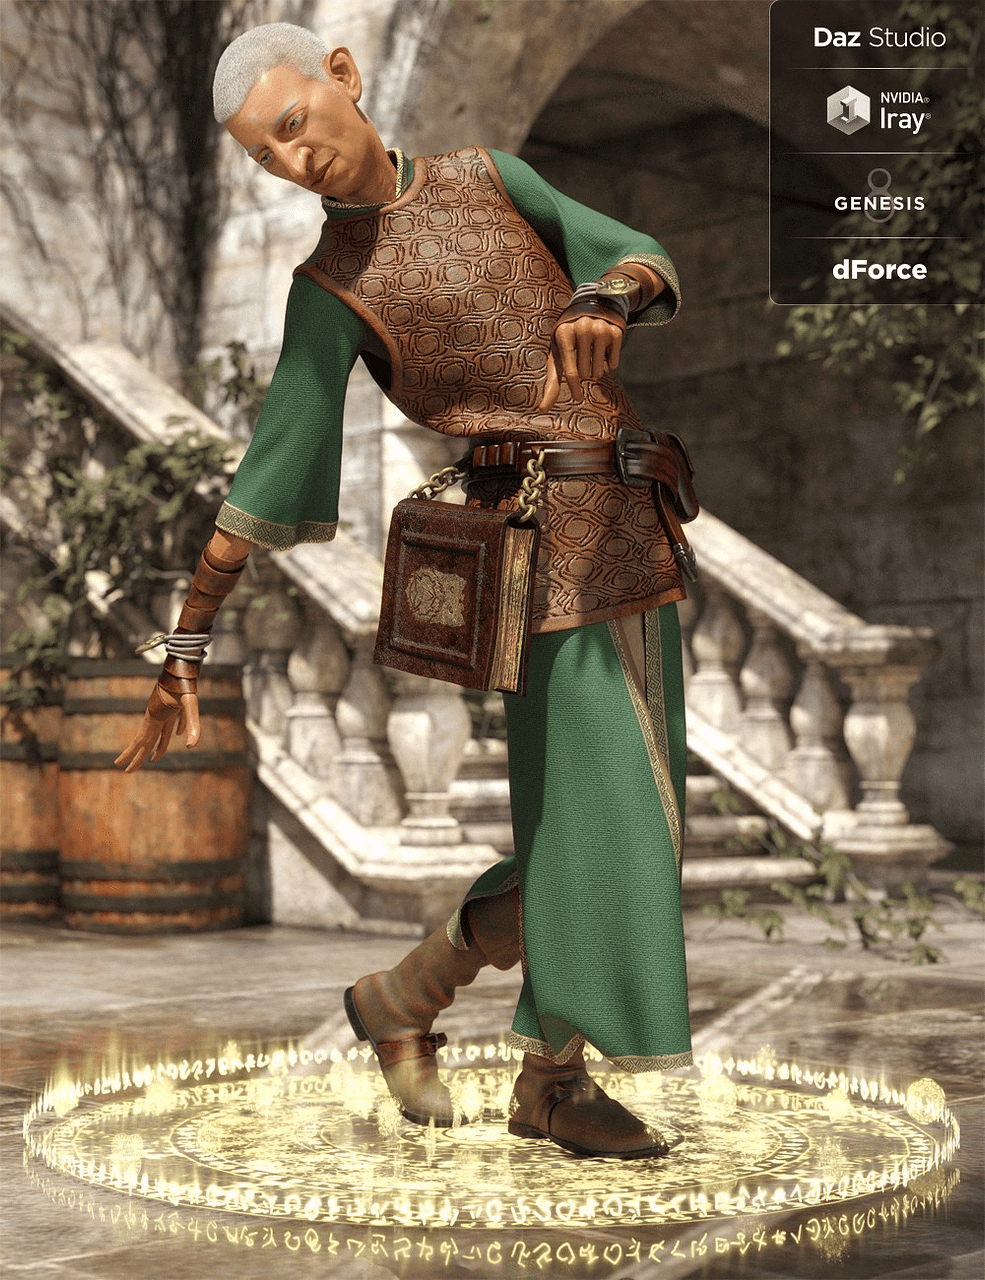 dforce outfit of cleric for daz studio